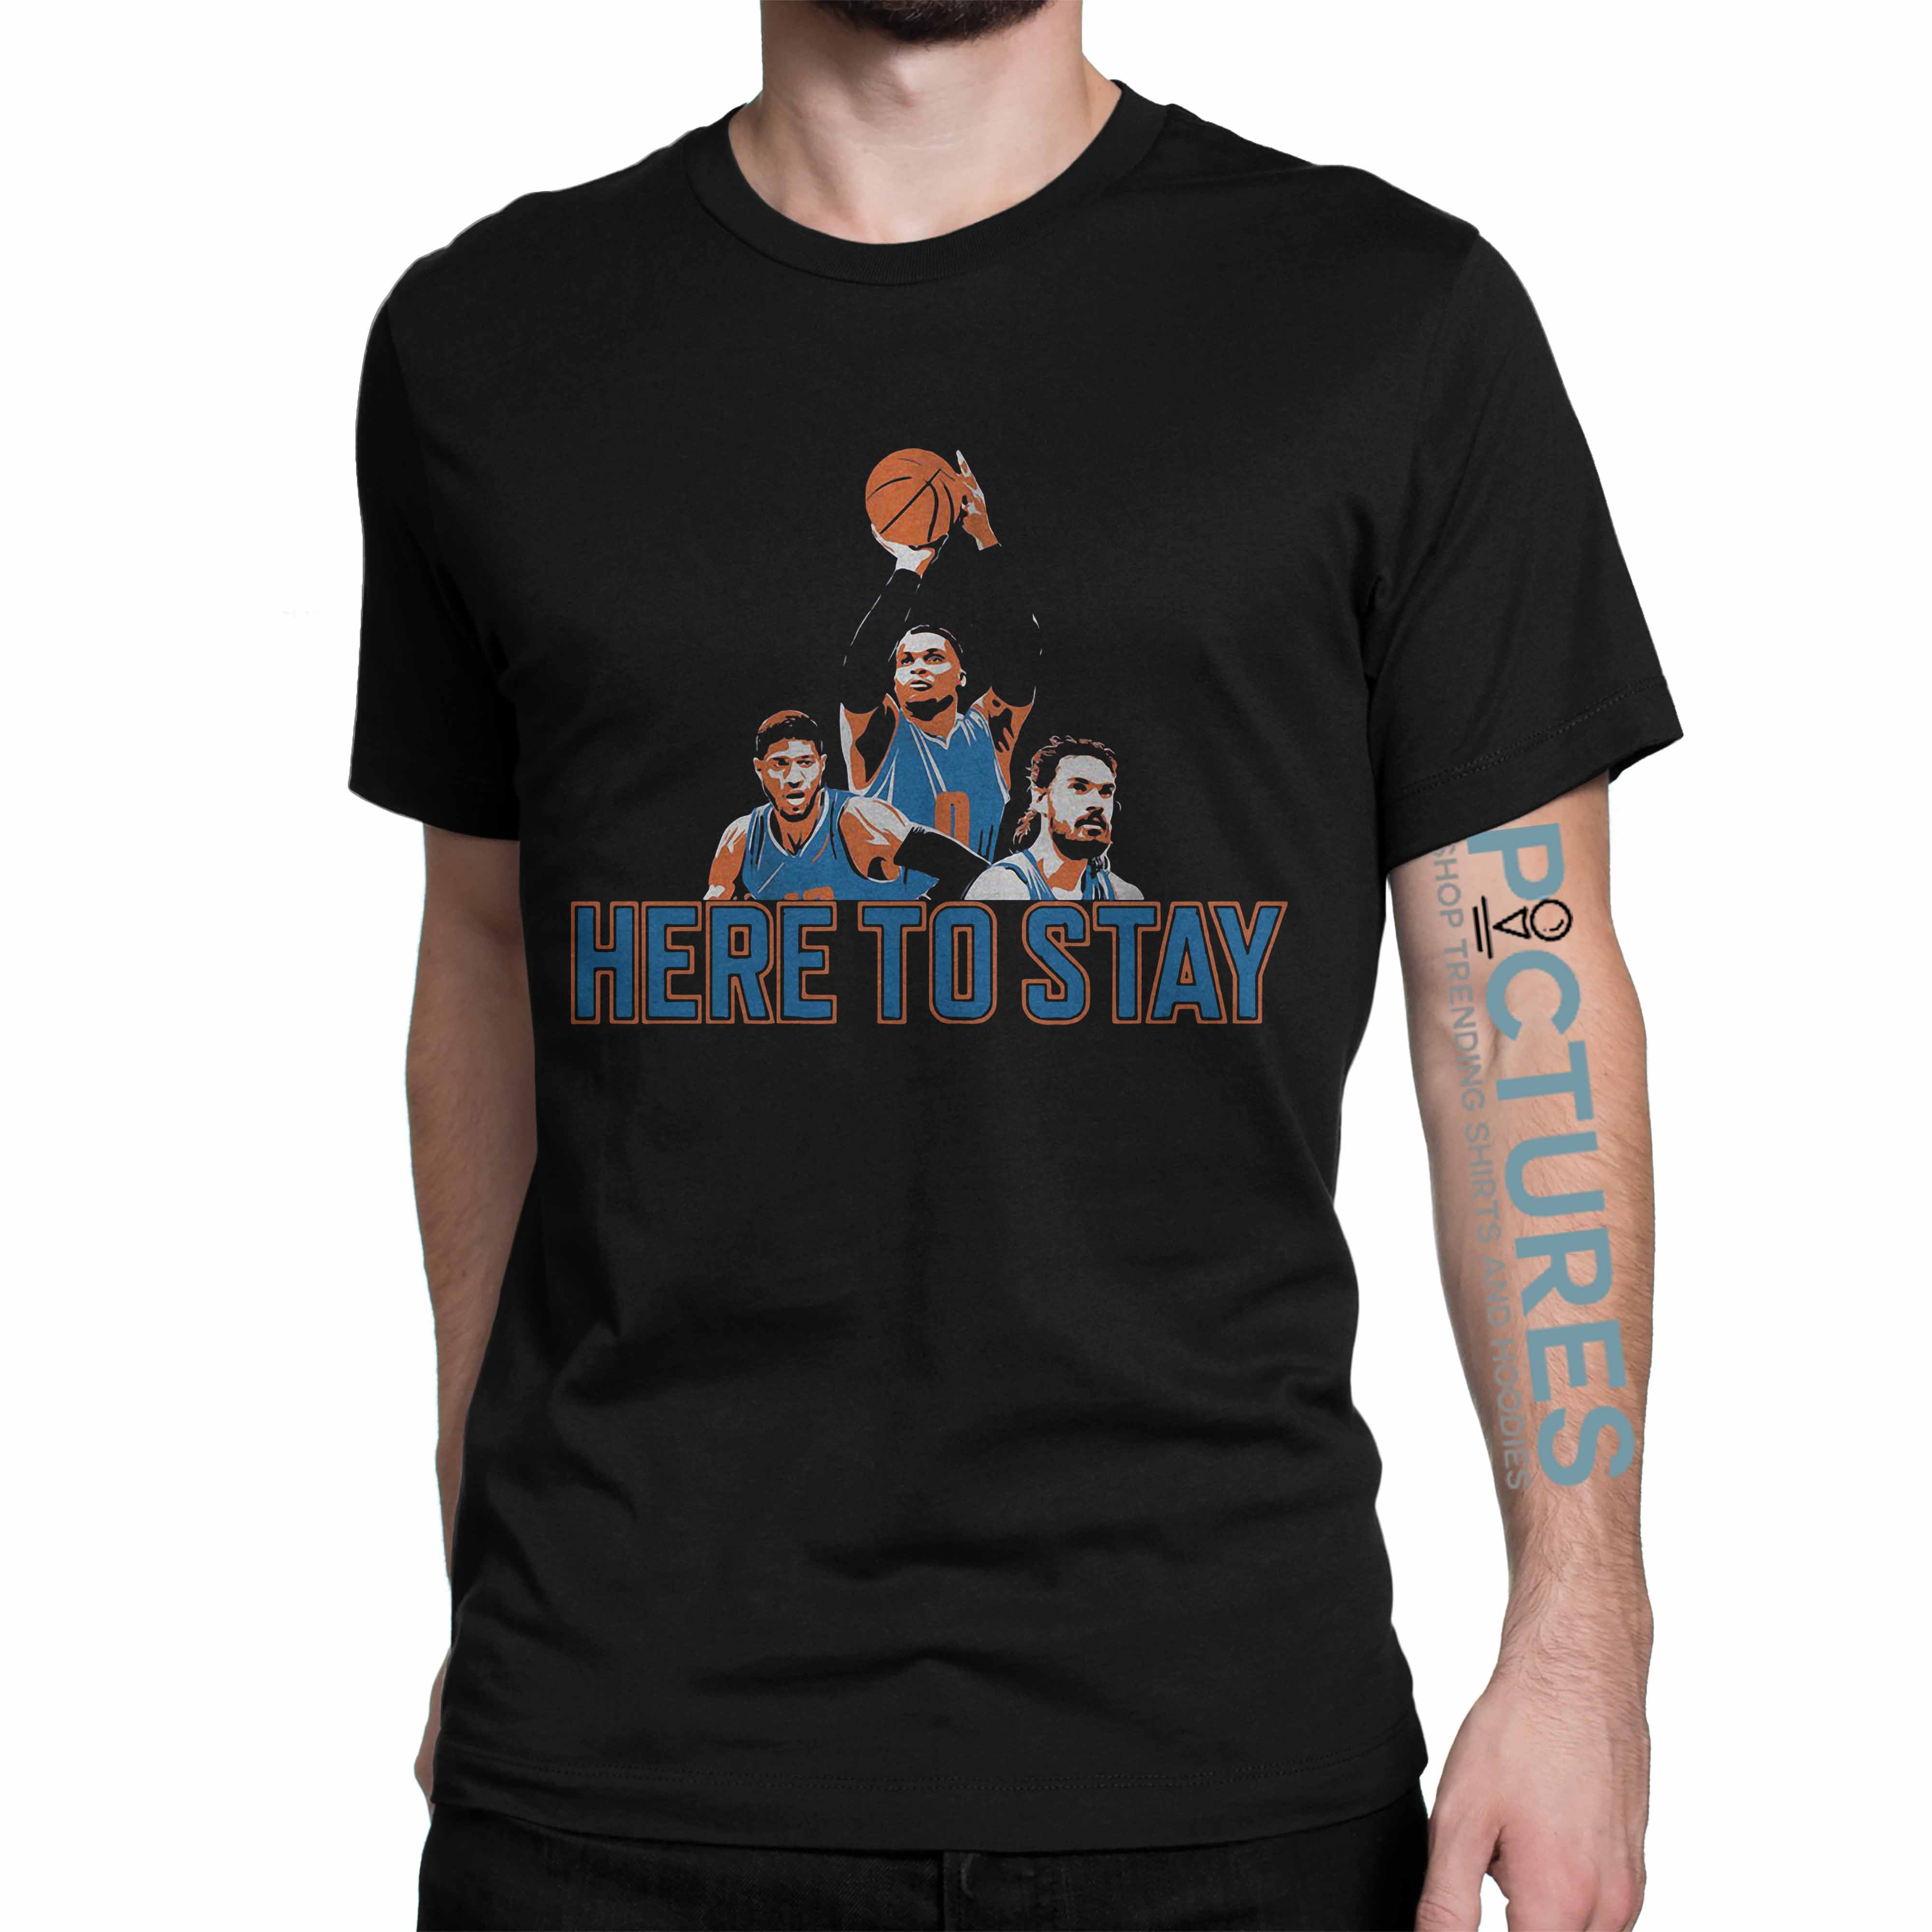 Official Here to stay Paul, Russell and Steven shirt